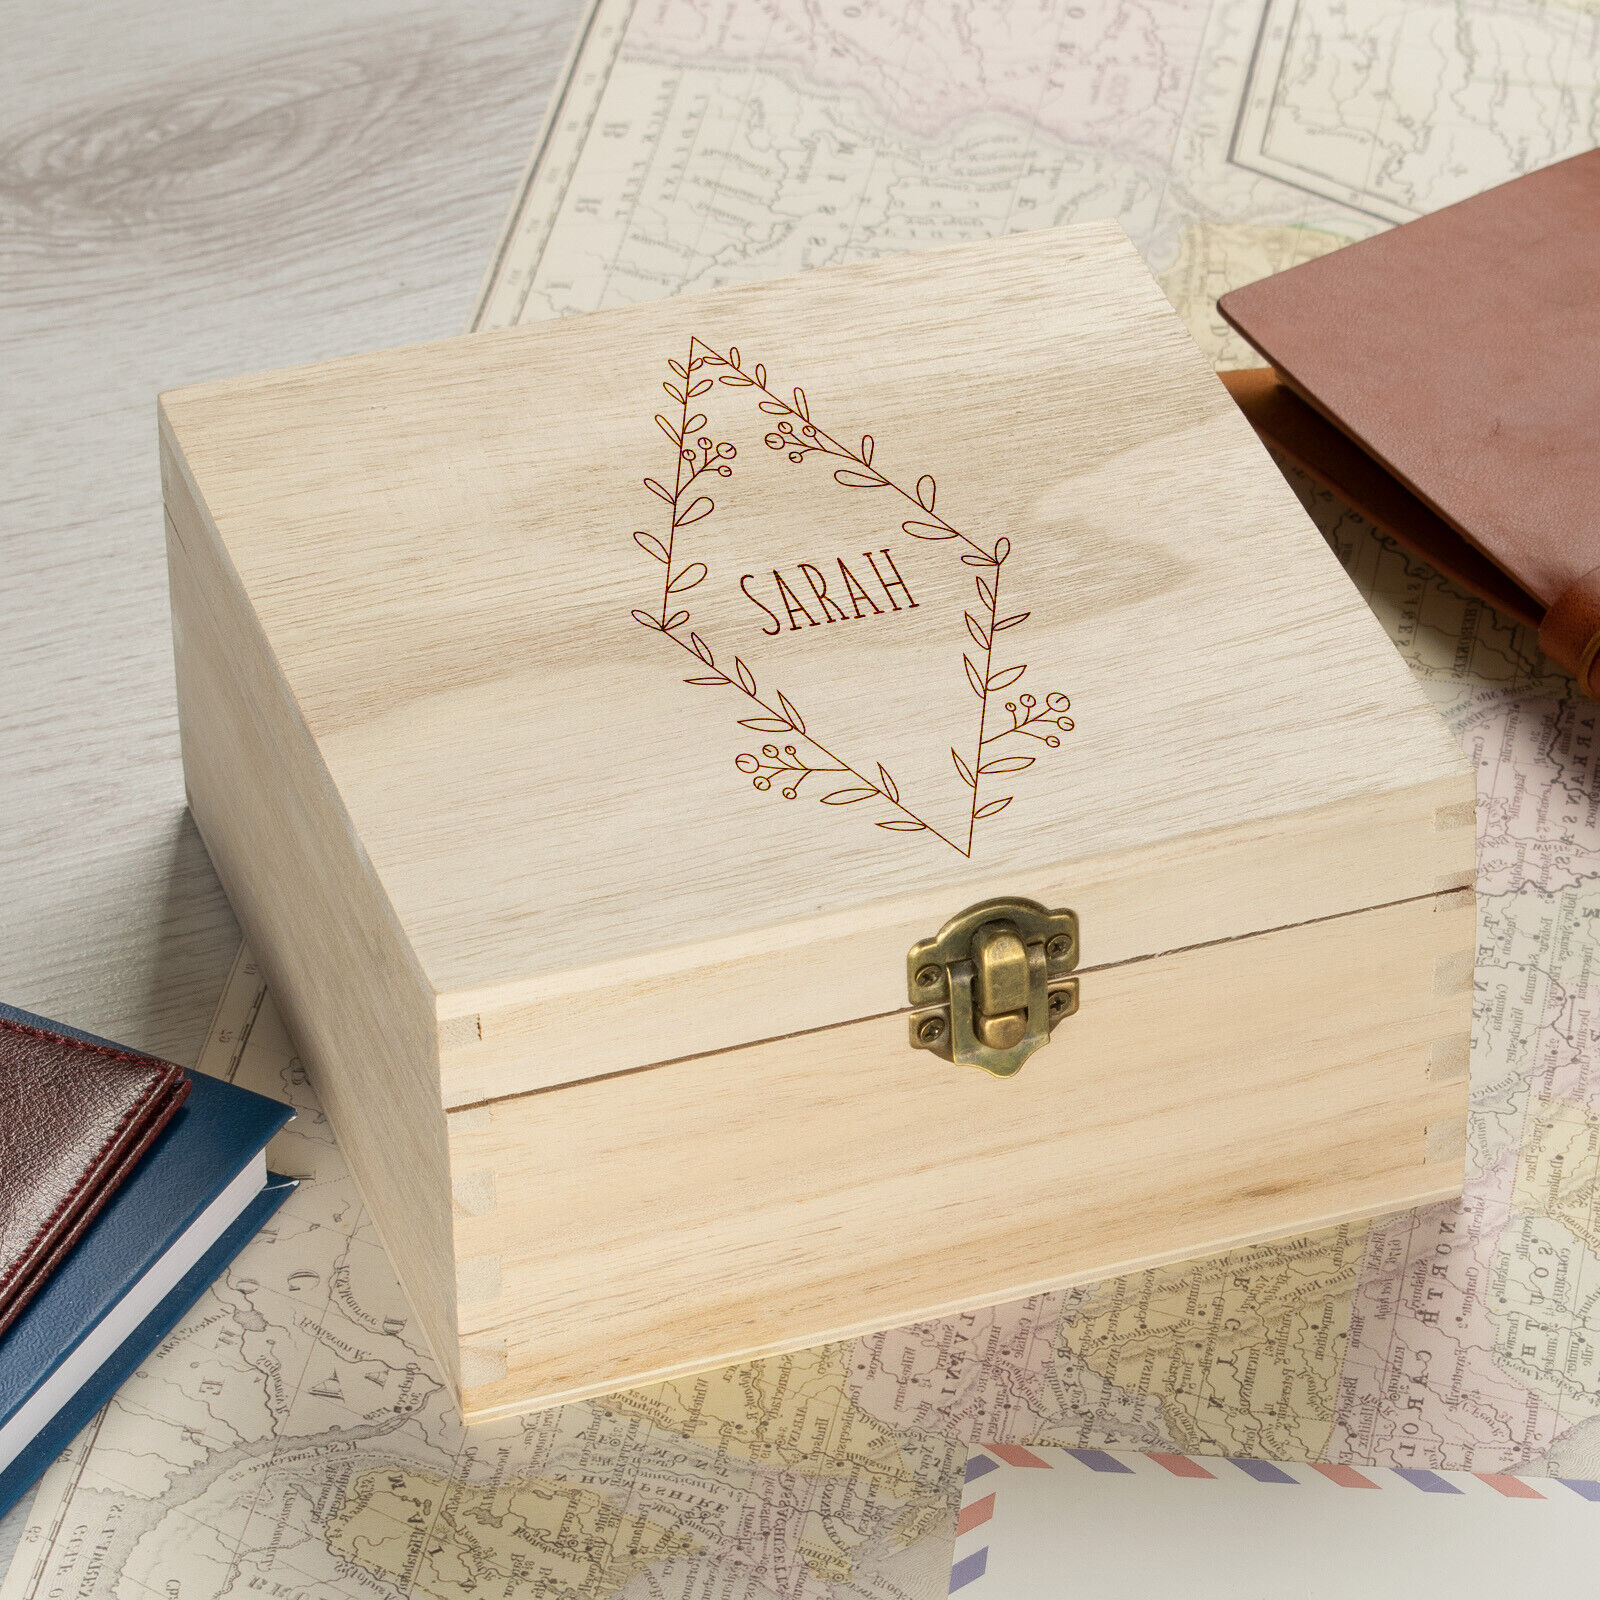 Details About Personalised Wooden Keepsake Box Wedding Memory Engraved Gifts Any Name